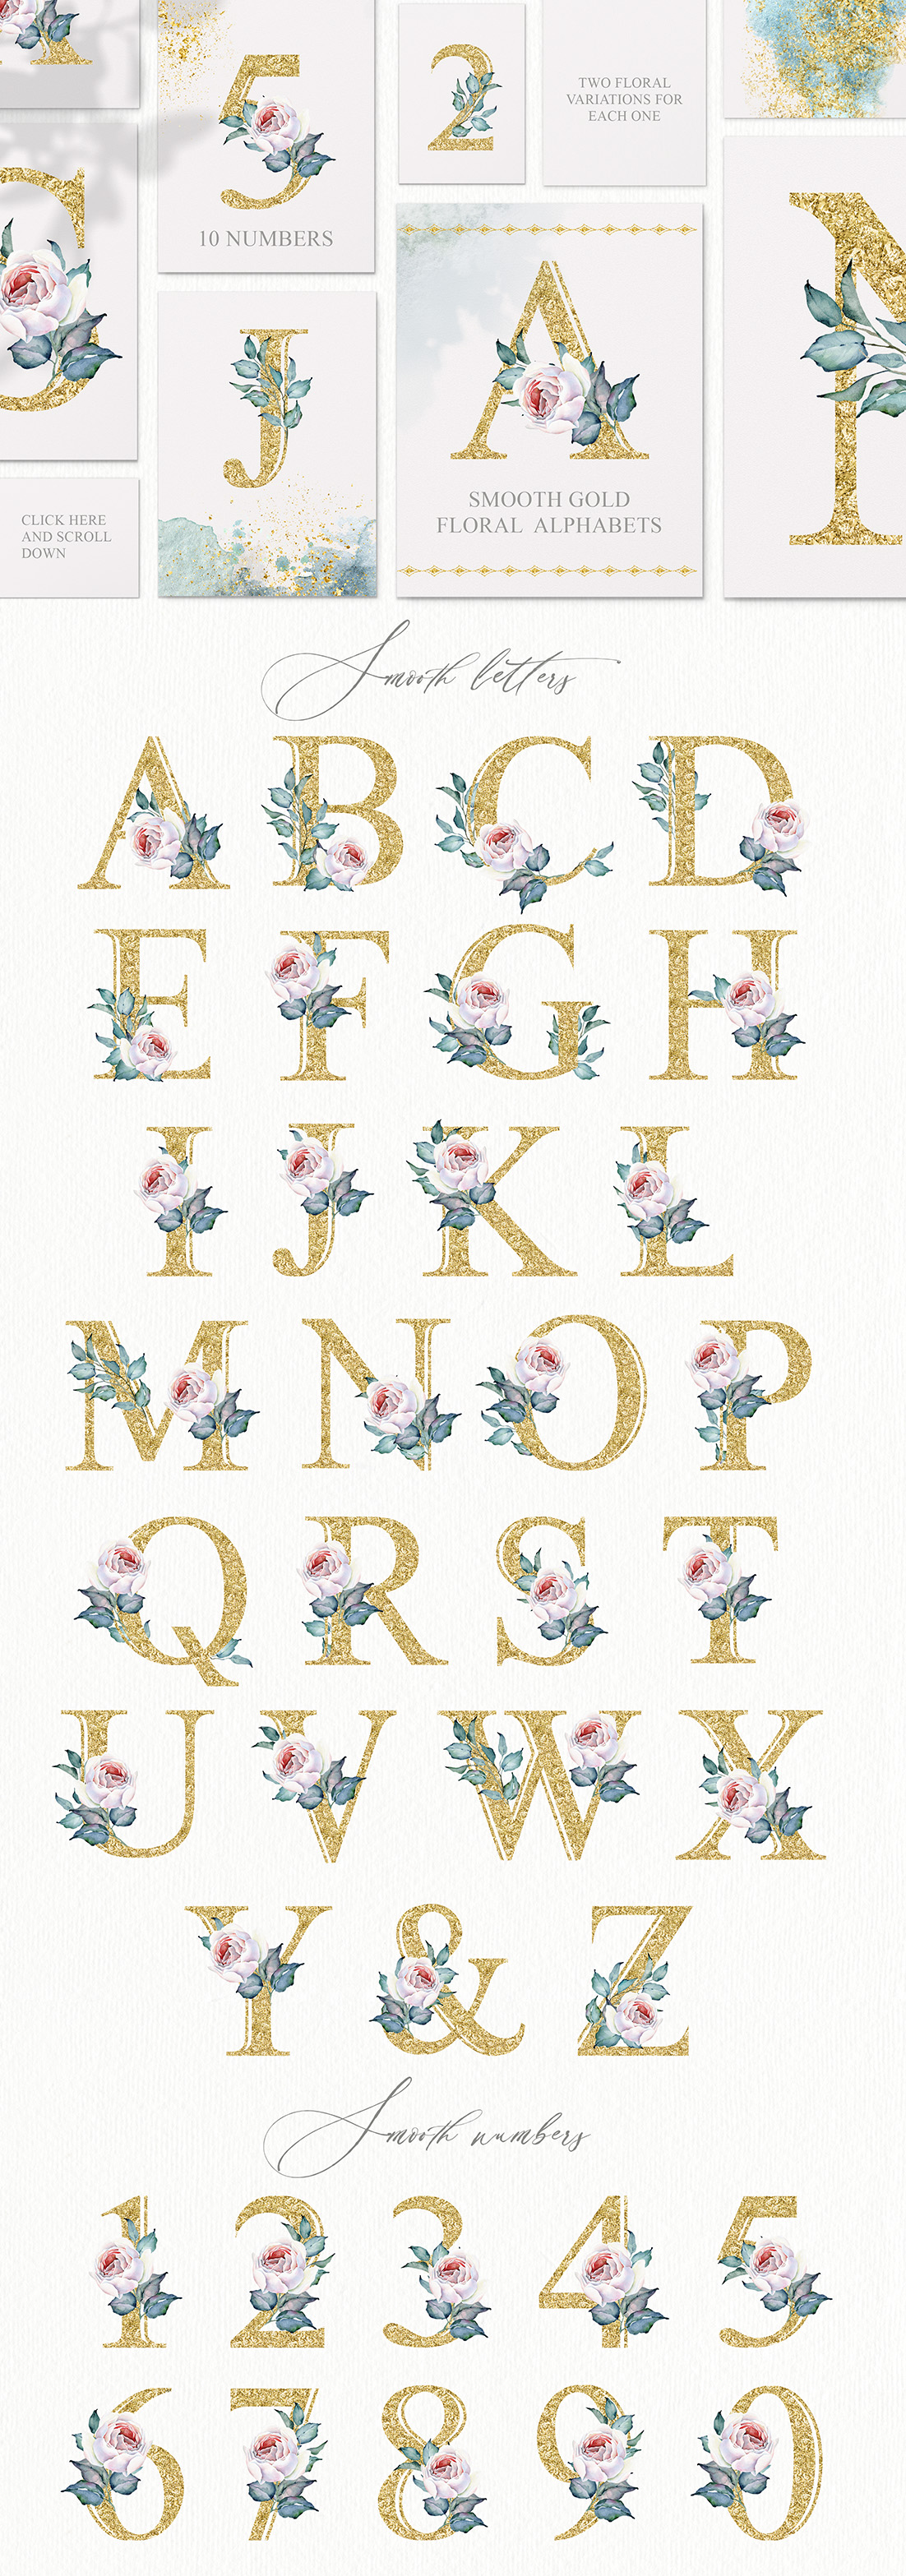 Watercolour Floral Illustrations and Alphabets